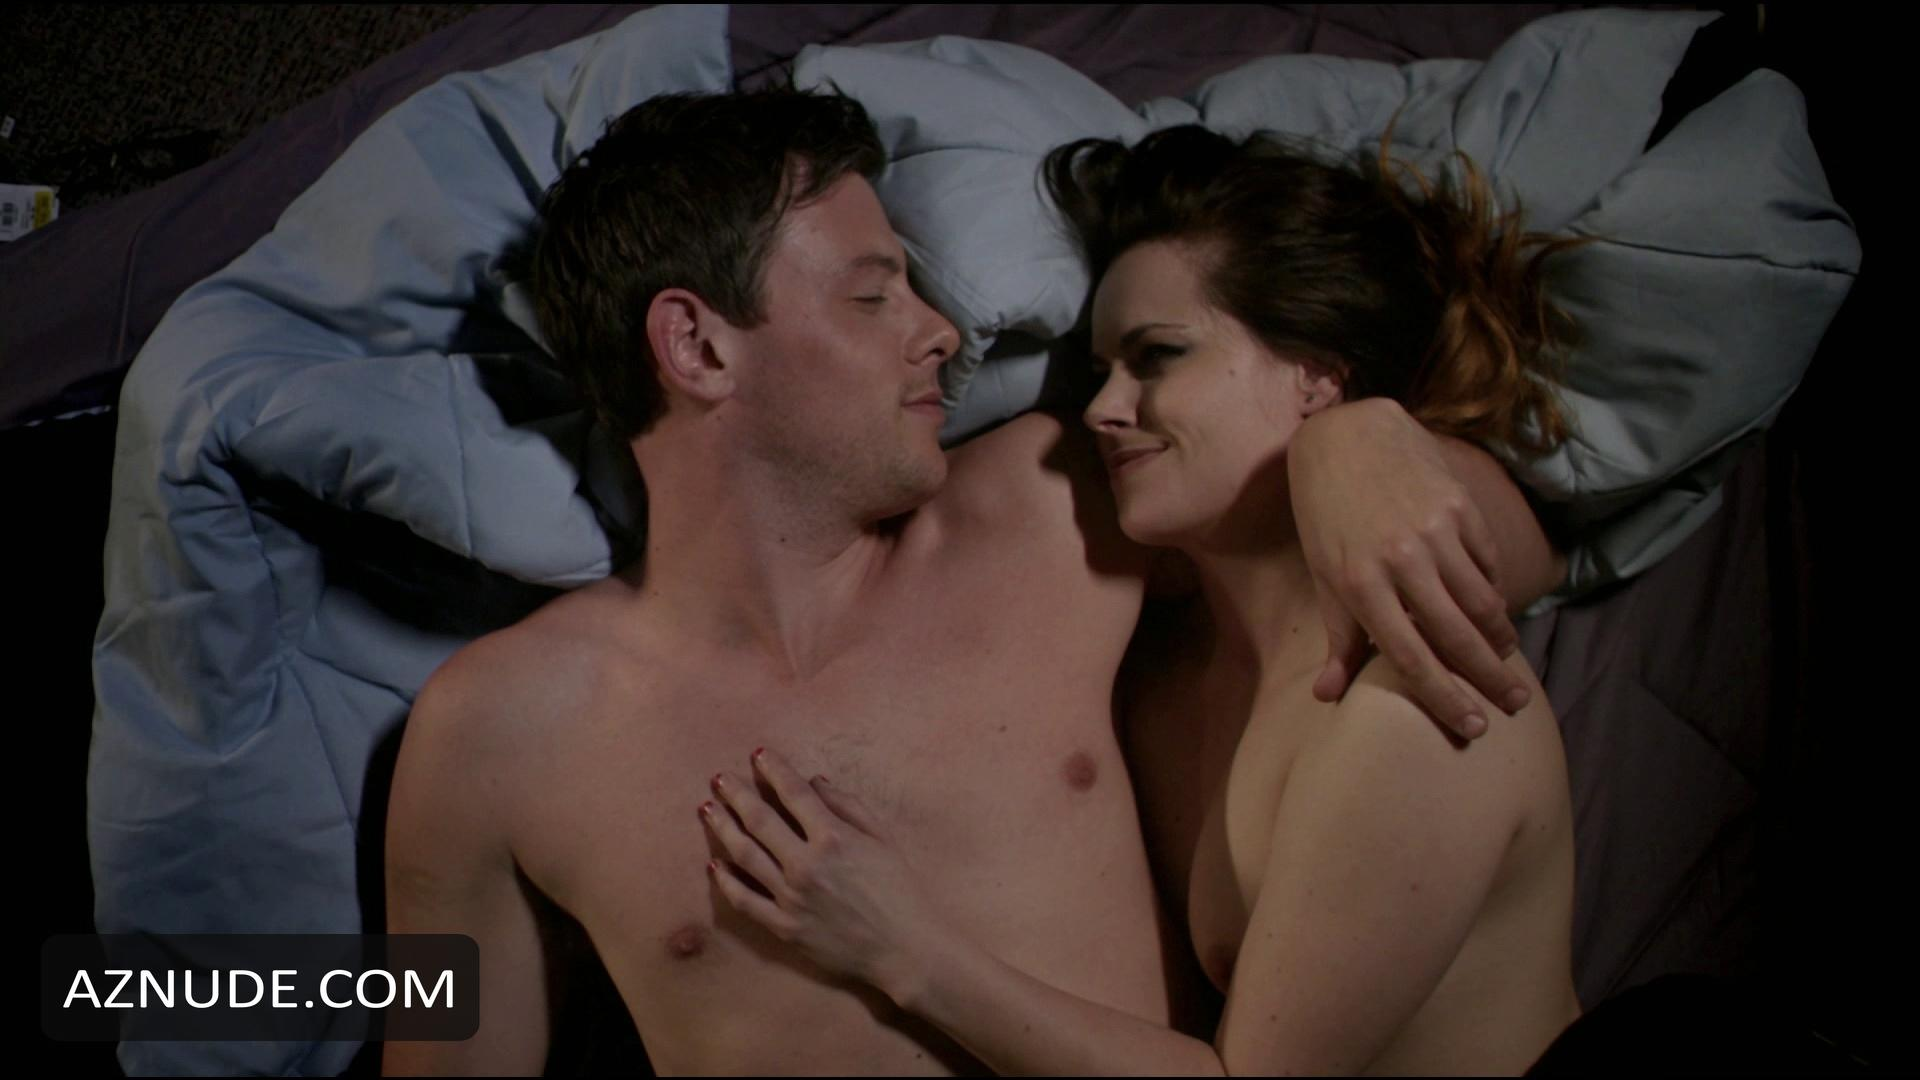 Cory monteith sex tape